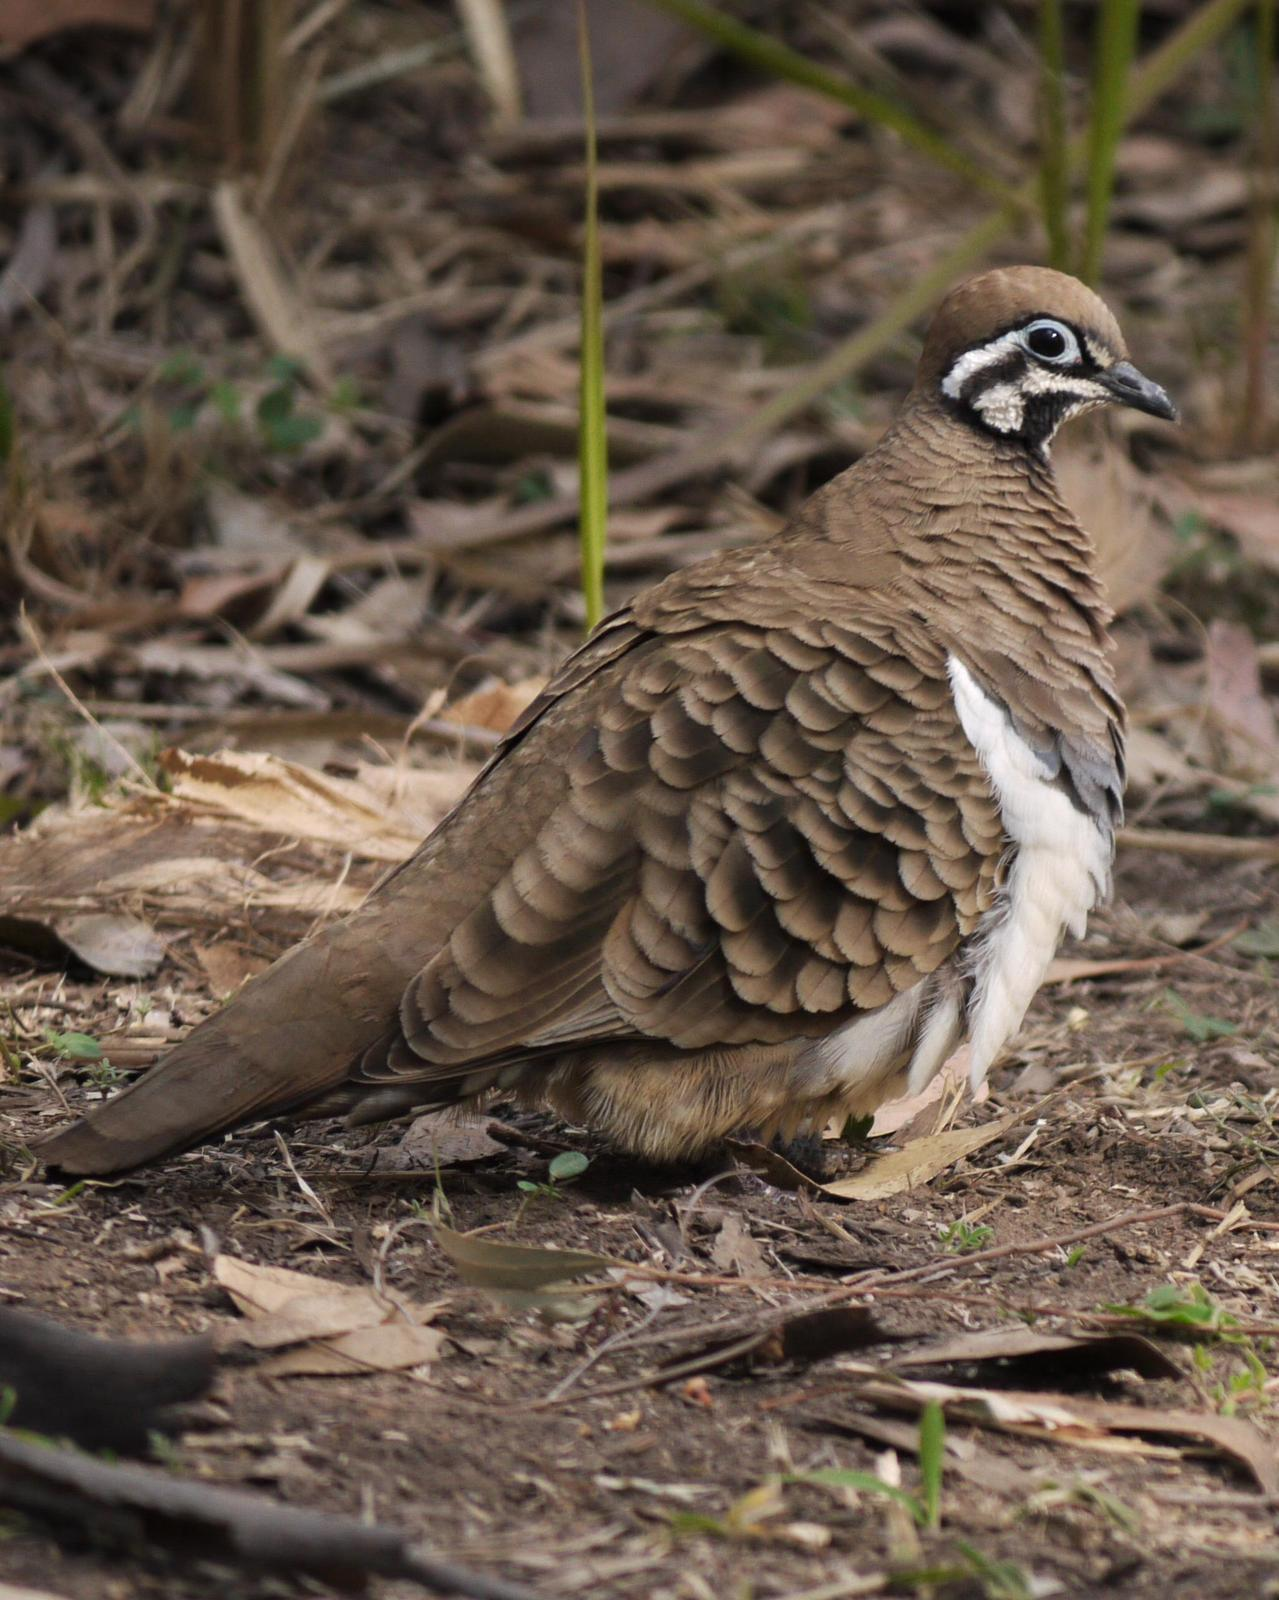 Squatter Pigeon Photo by Peter Lowe